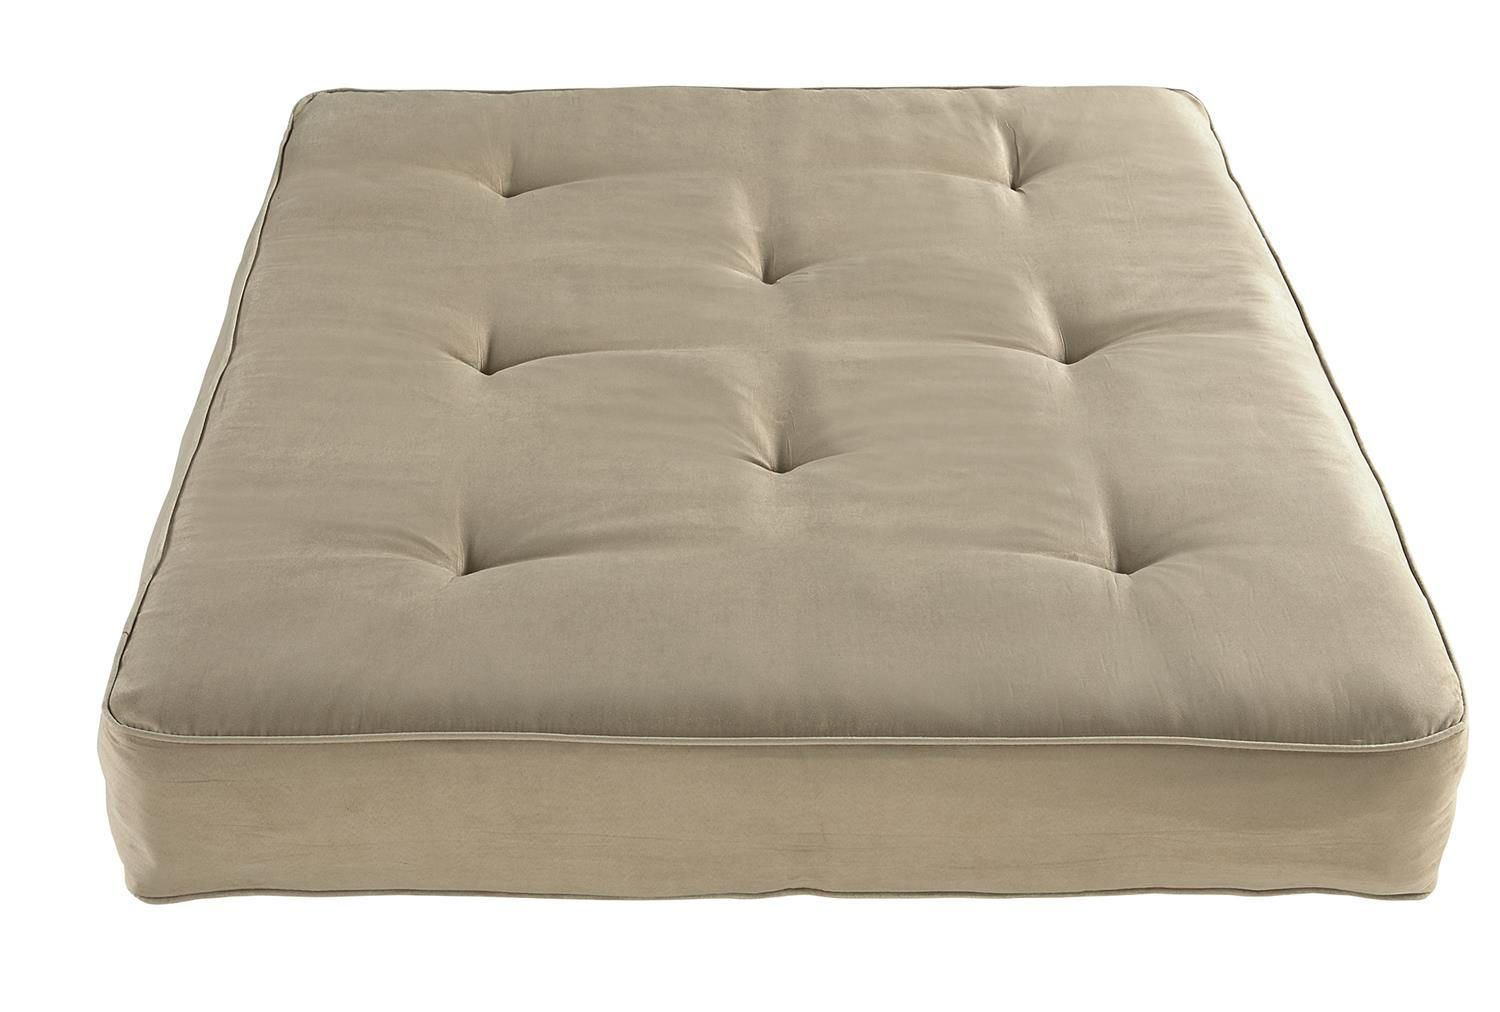 futon instructions inspirational cdbossington mattress interior to fresh futons bed with sofa replacement